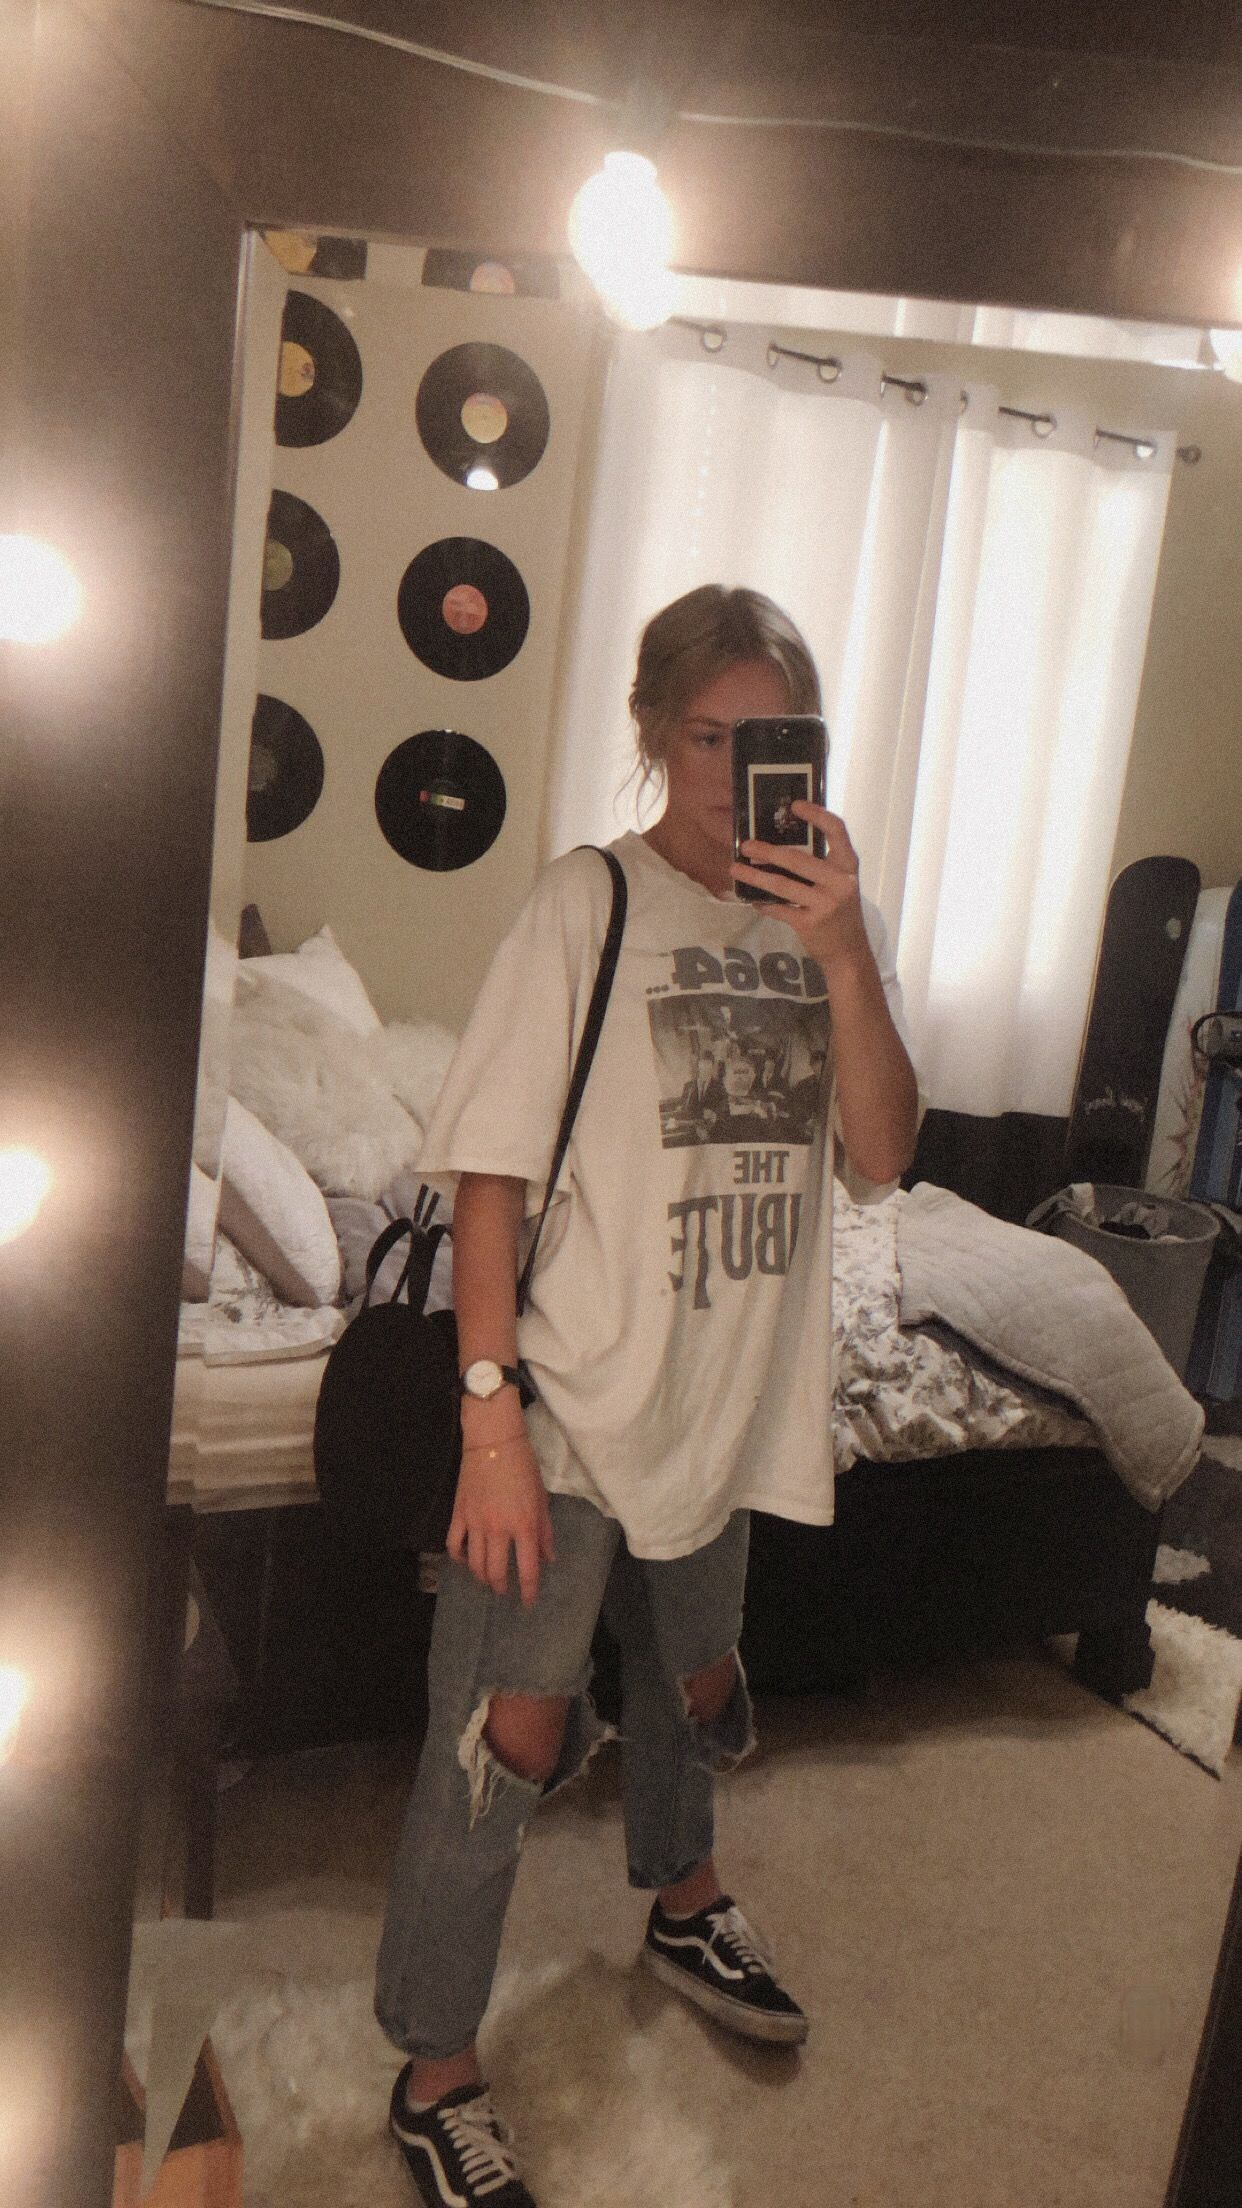 Band Tee Outfit Quelle von natalyelise7 #Band #Mode Idee für die Schule #Outfit ...